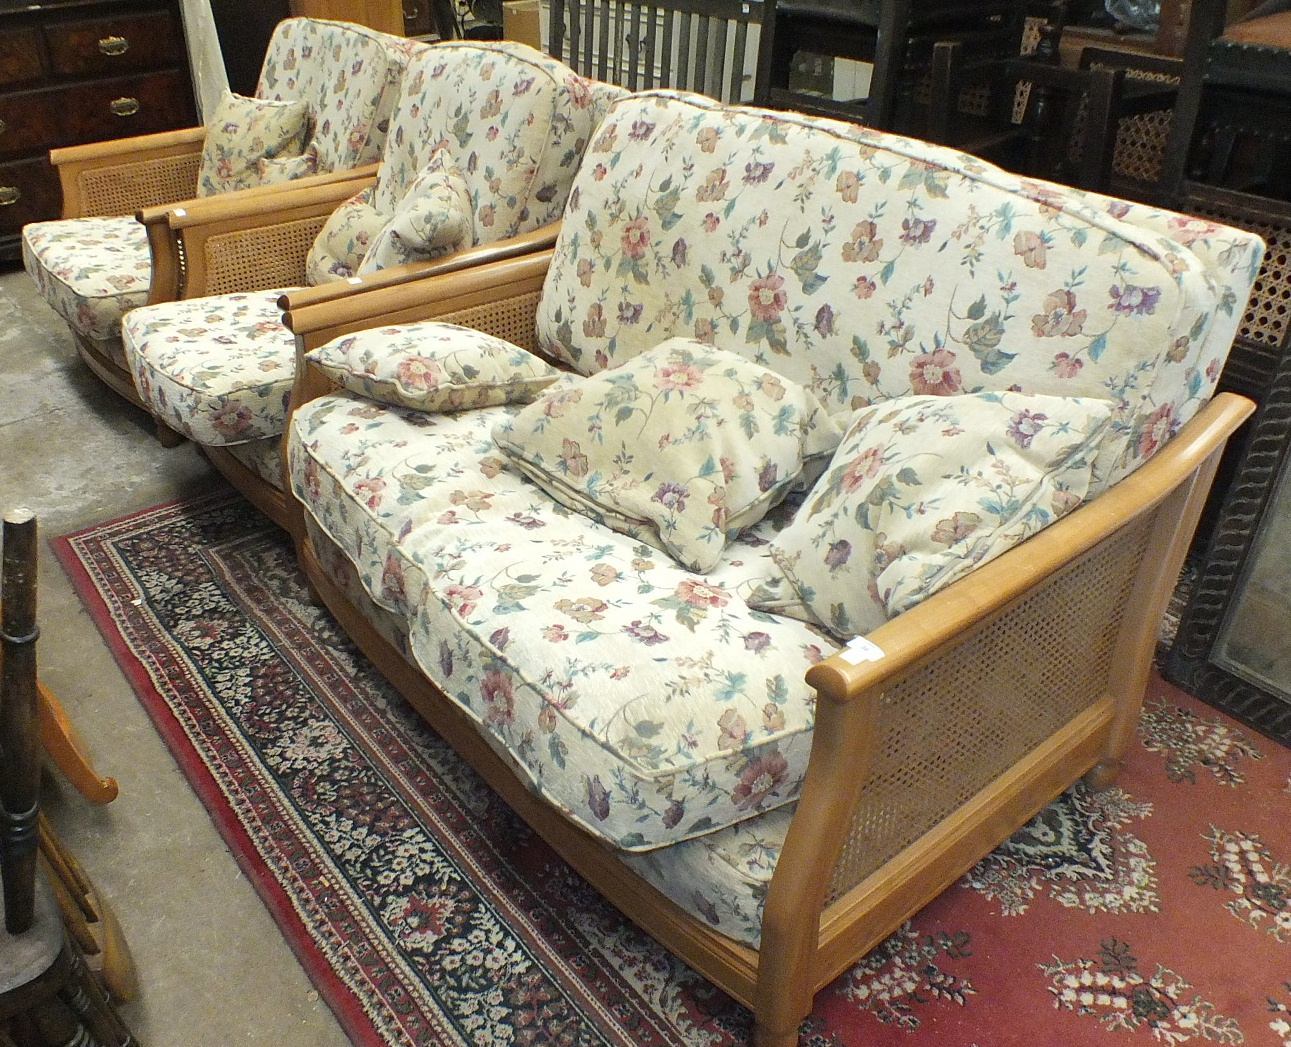 Lot 36 - A modern Ercol Bergère-style light wood two-seater settee with cane sides and loose cushions and two